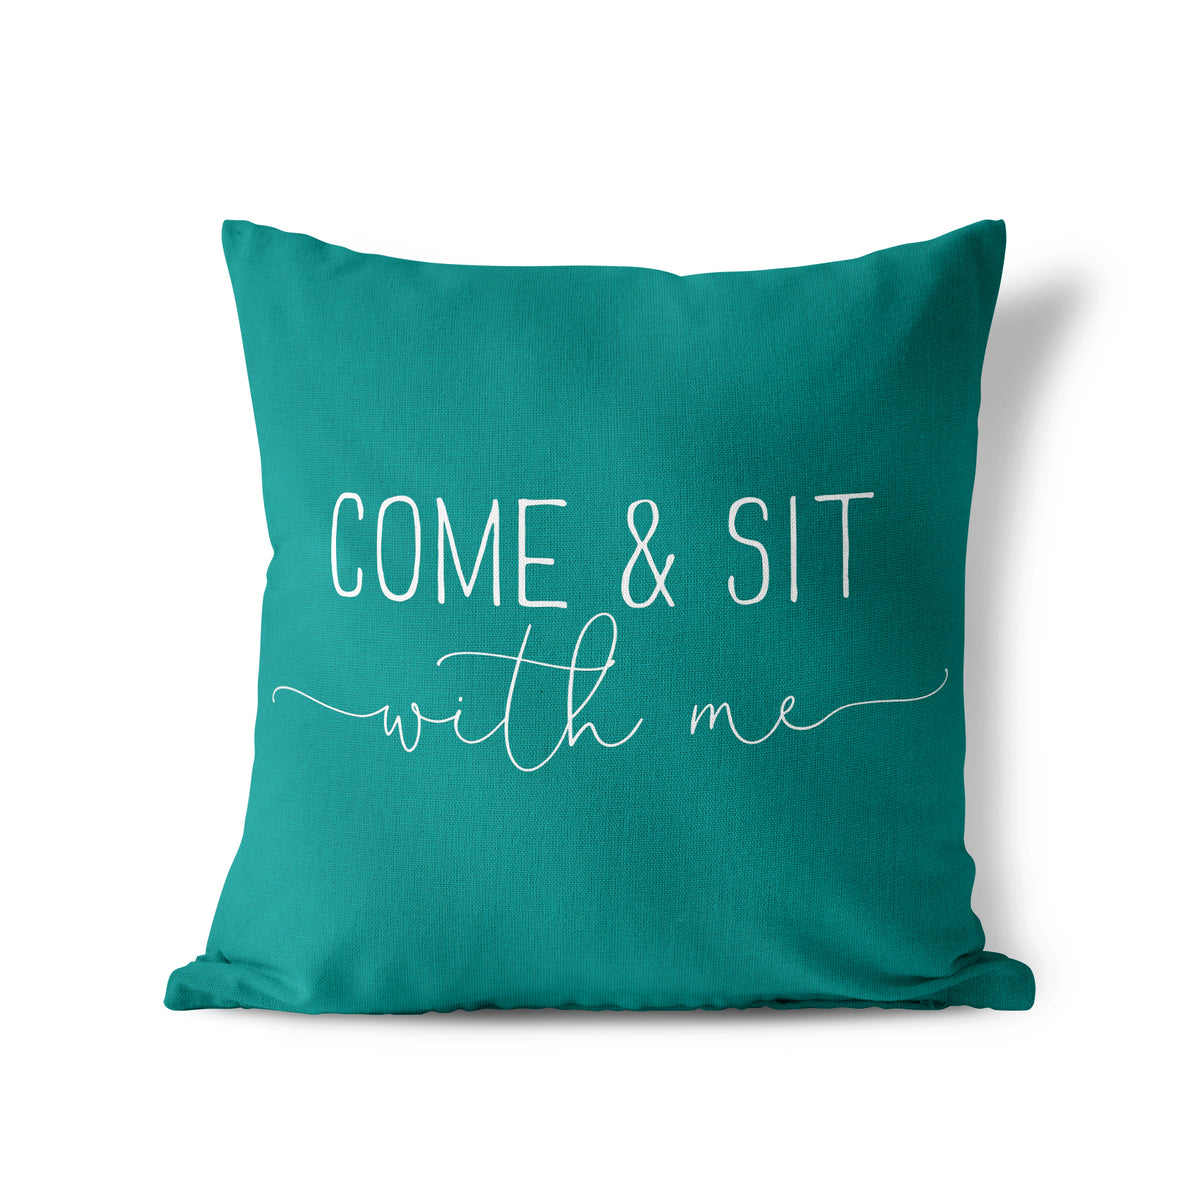 Come And Sit - Pillow Cover